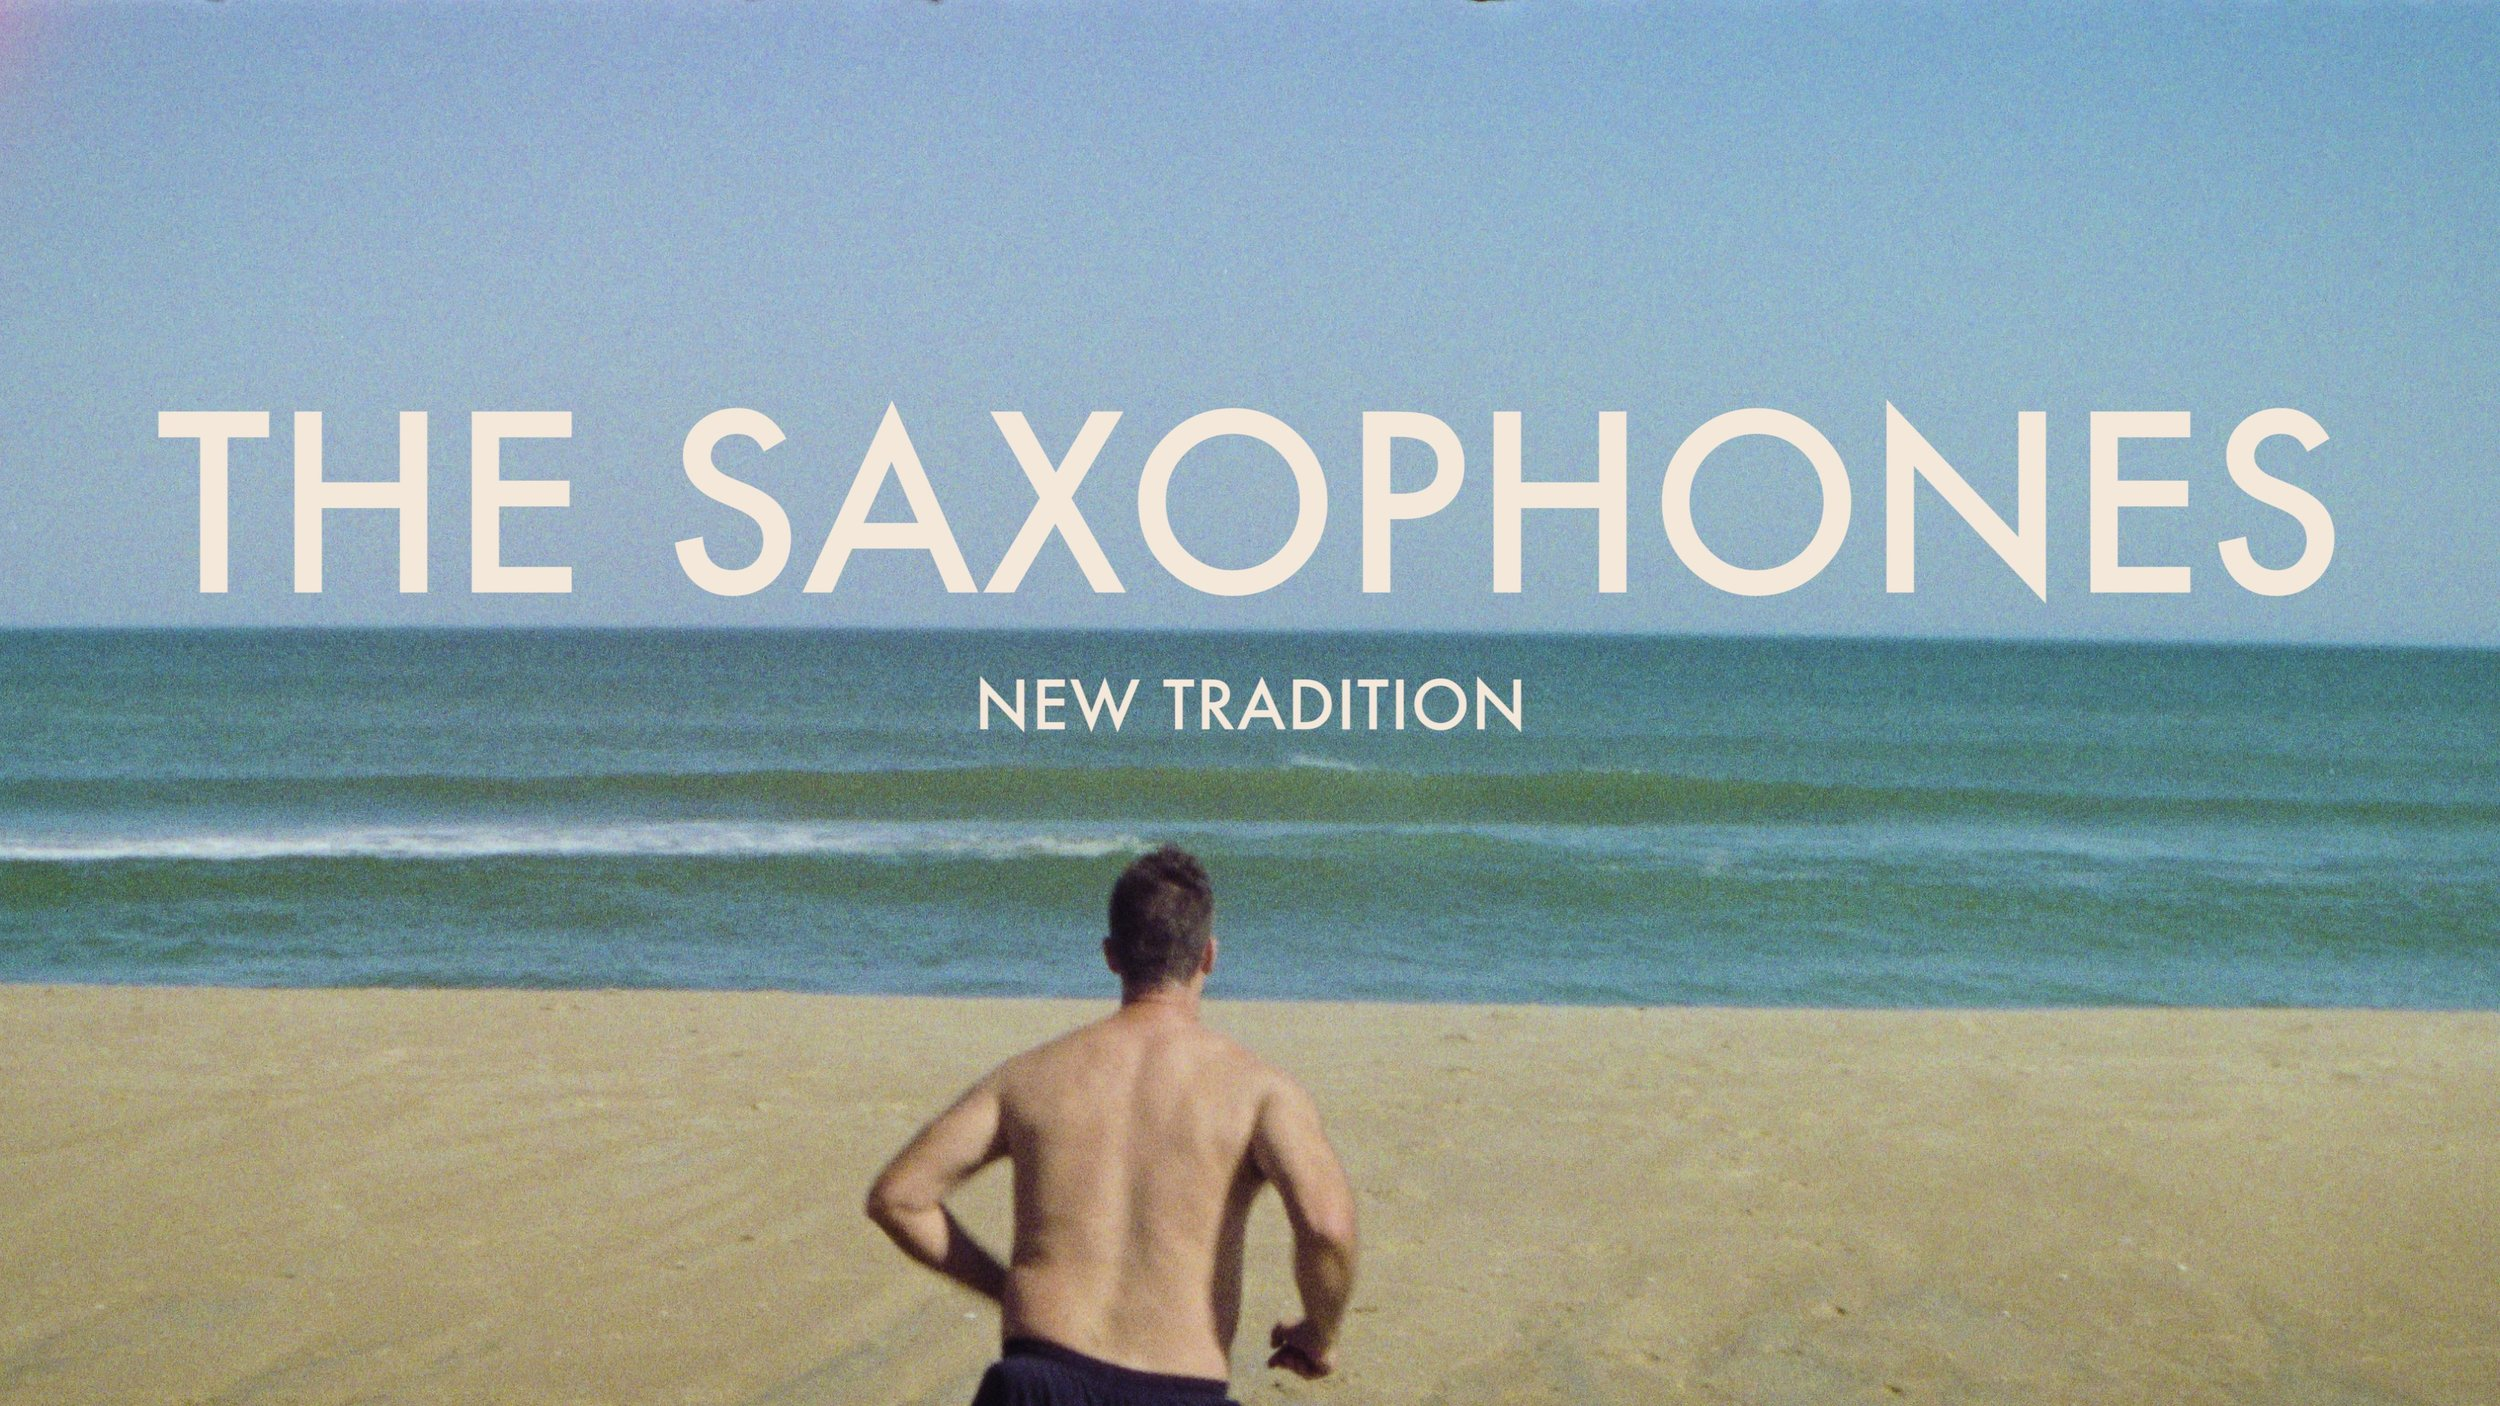 """The Saxophones """"New Tradition"""" Music Video (2017)"""